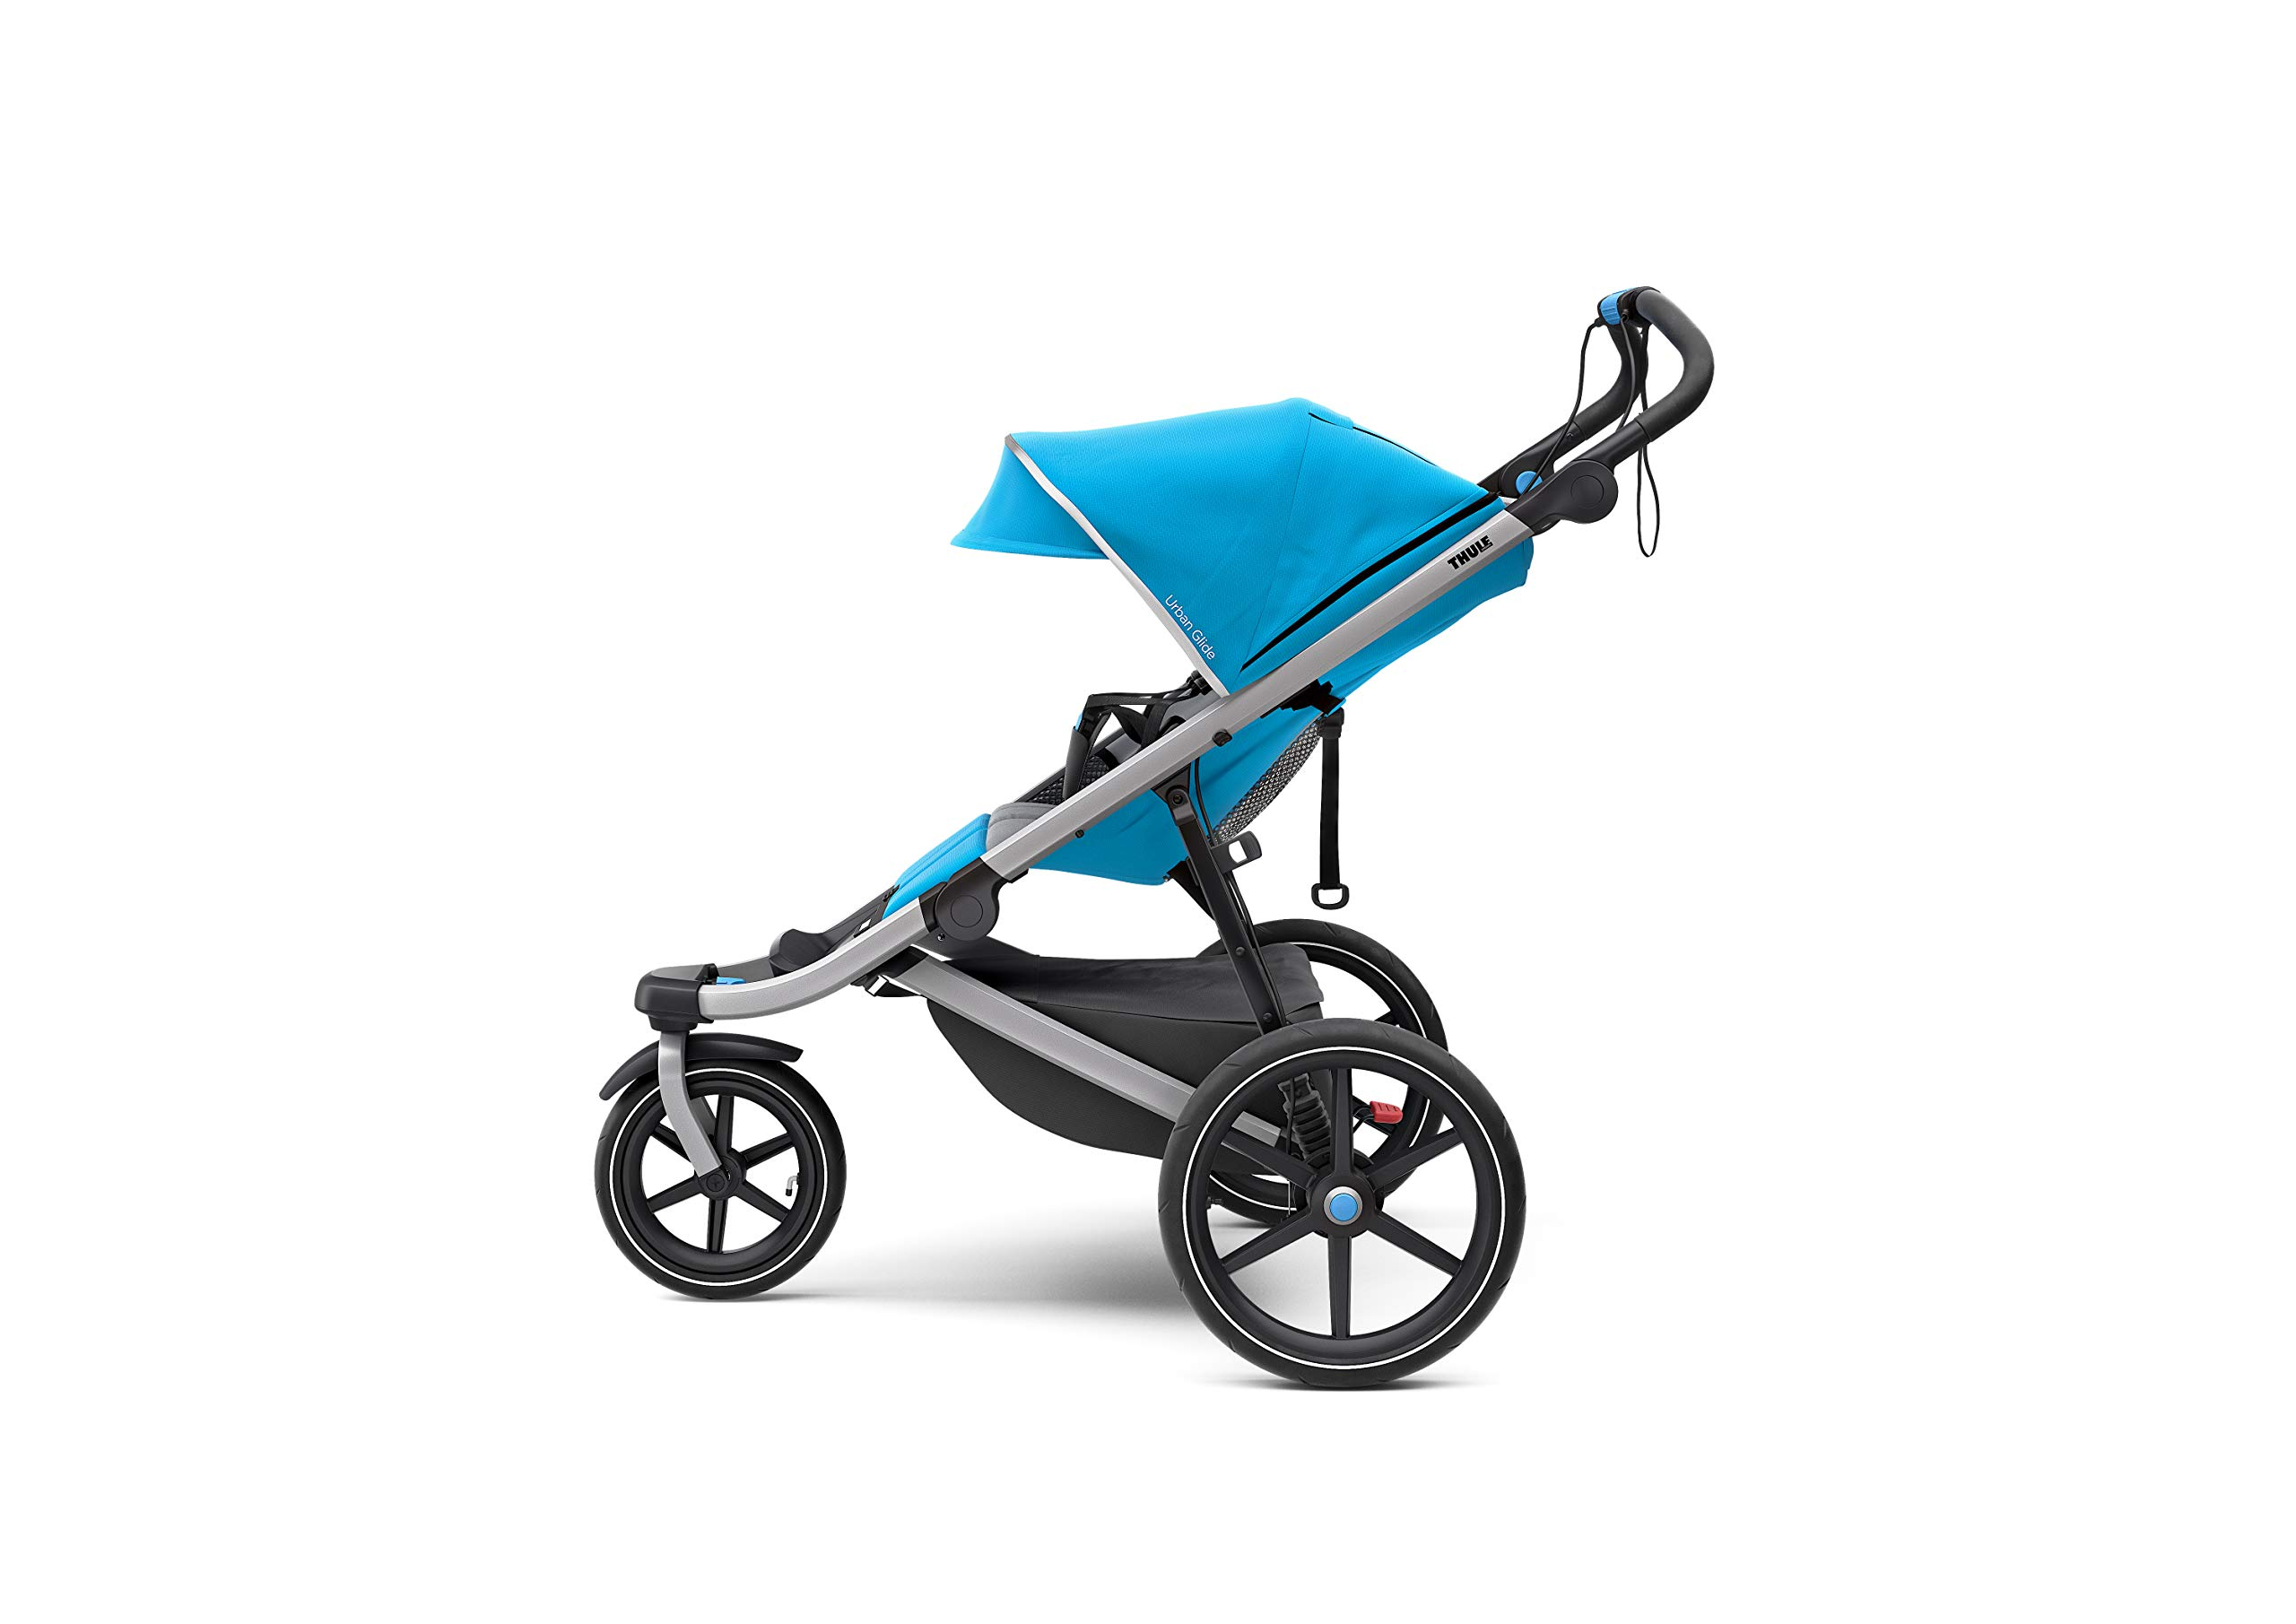 Thule Urban Glide 2.0 Jogging Stroller (Thule Blue w/Silver Frame) Thule One-handed, compact fold for easy storage and transportation Integrated twist hand brake provides speed control on hilly terrain Multi-position canopy with side-ventilation windows ensures your child is comfortable 11